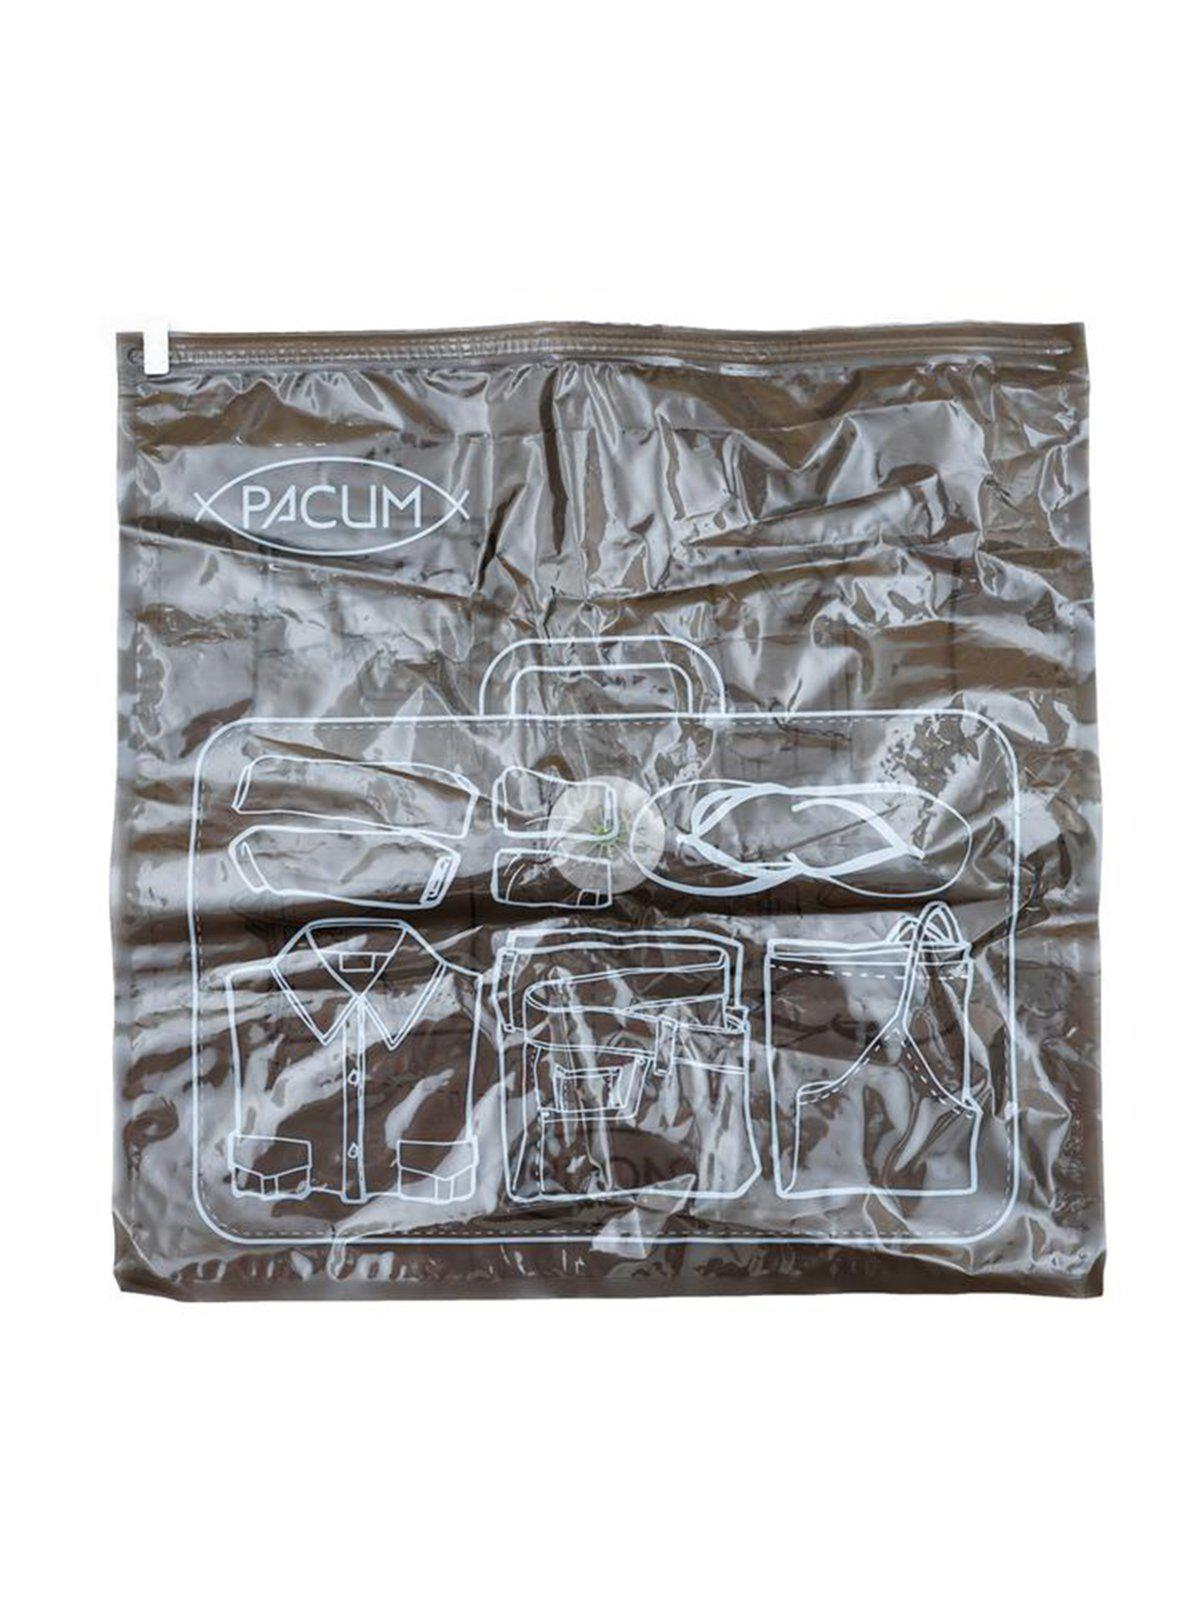 Pacum Extra Vacuum Bag - MORE by Morello - Indonesia